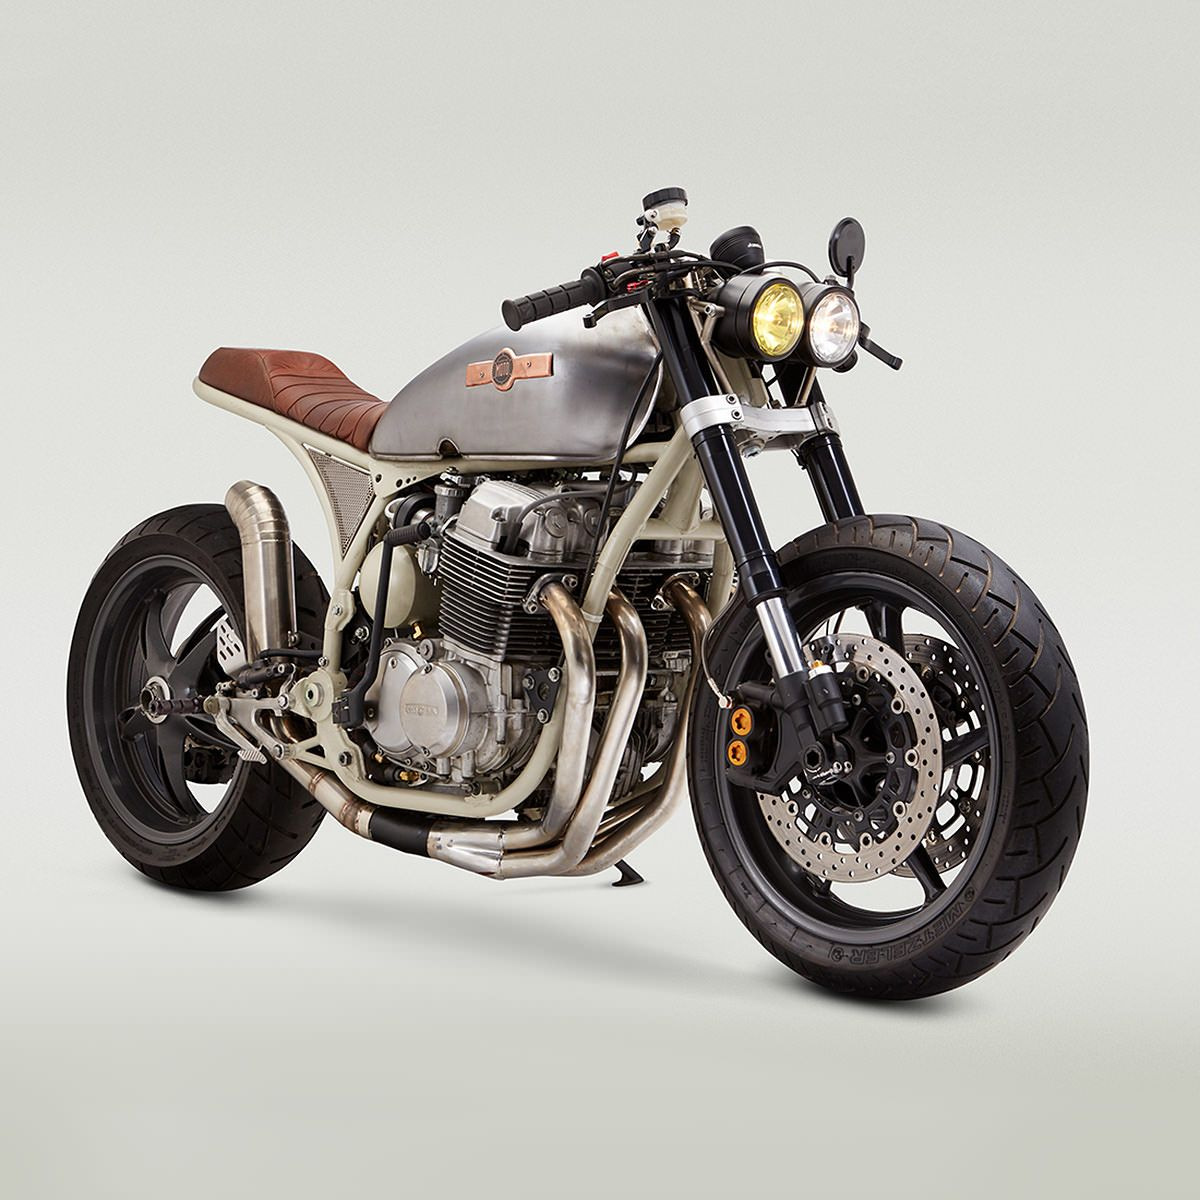 Star Struck A NASA Inspired Honda CB 750 Cafe Racer